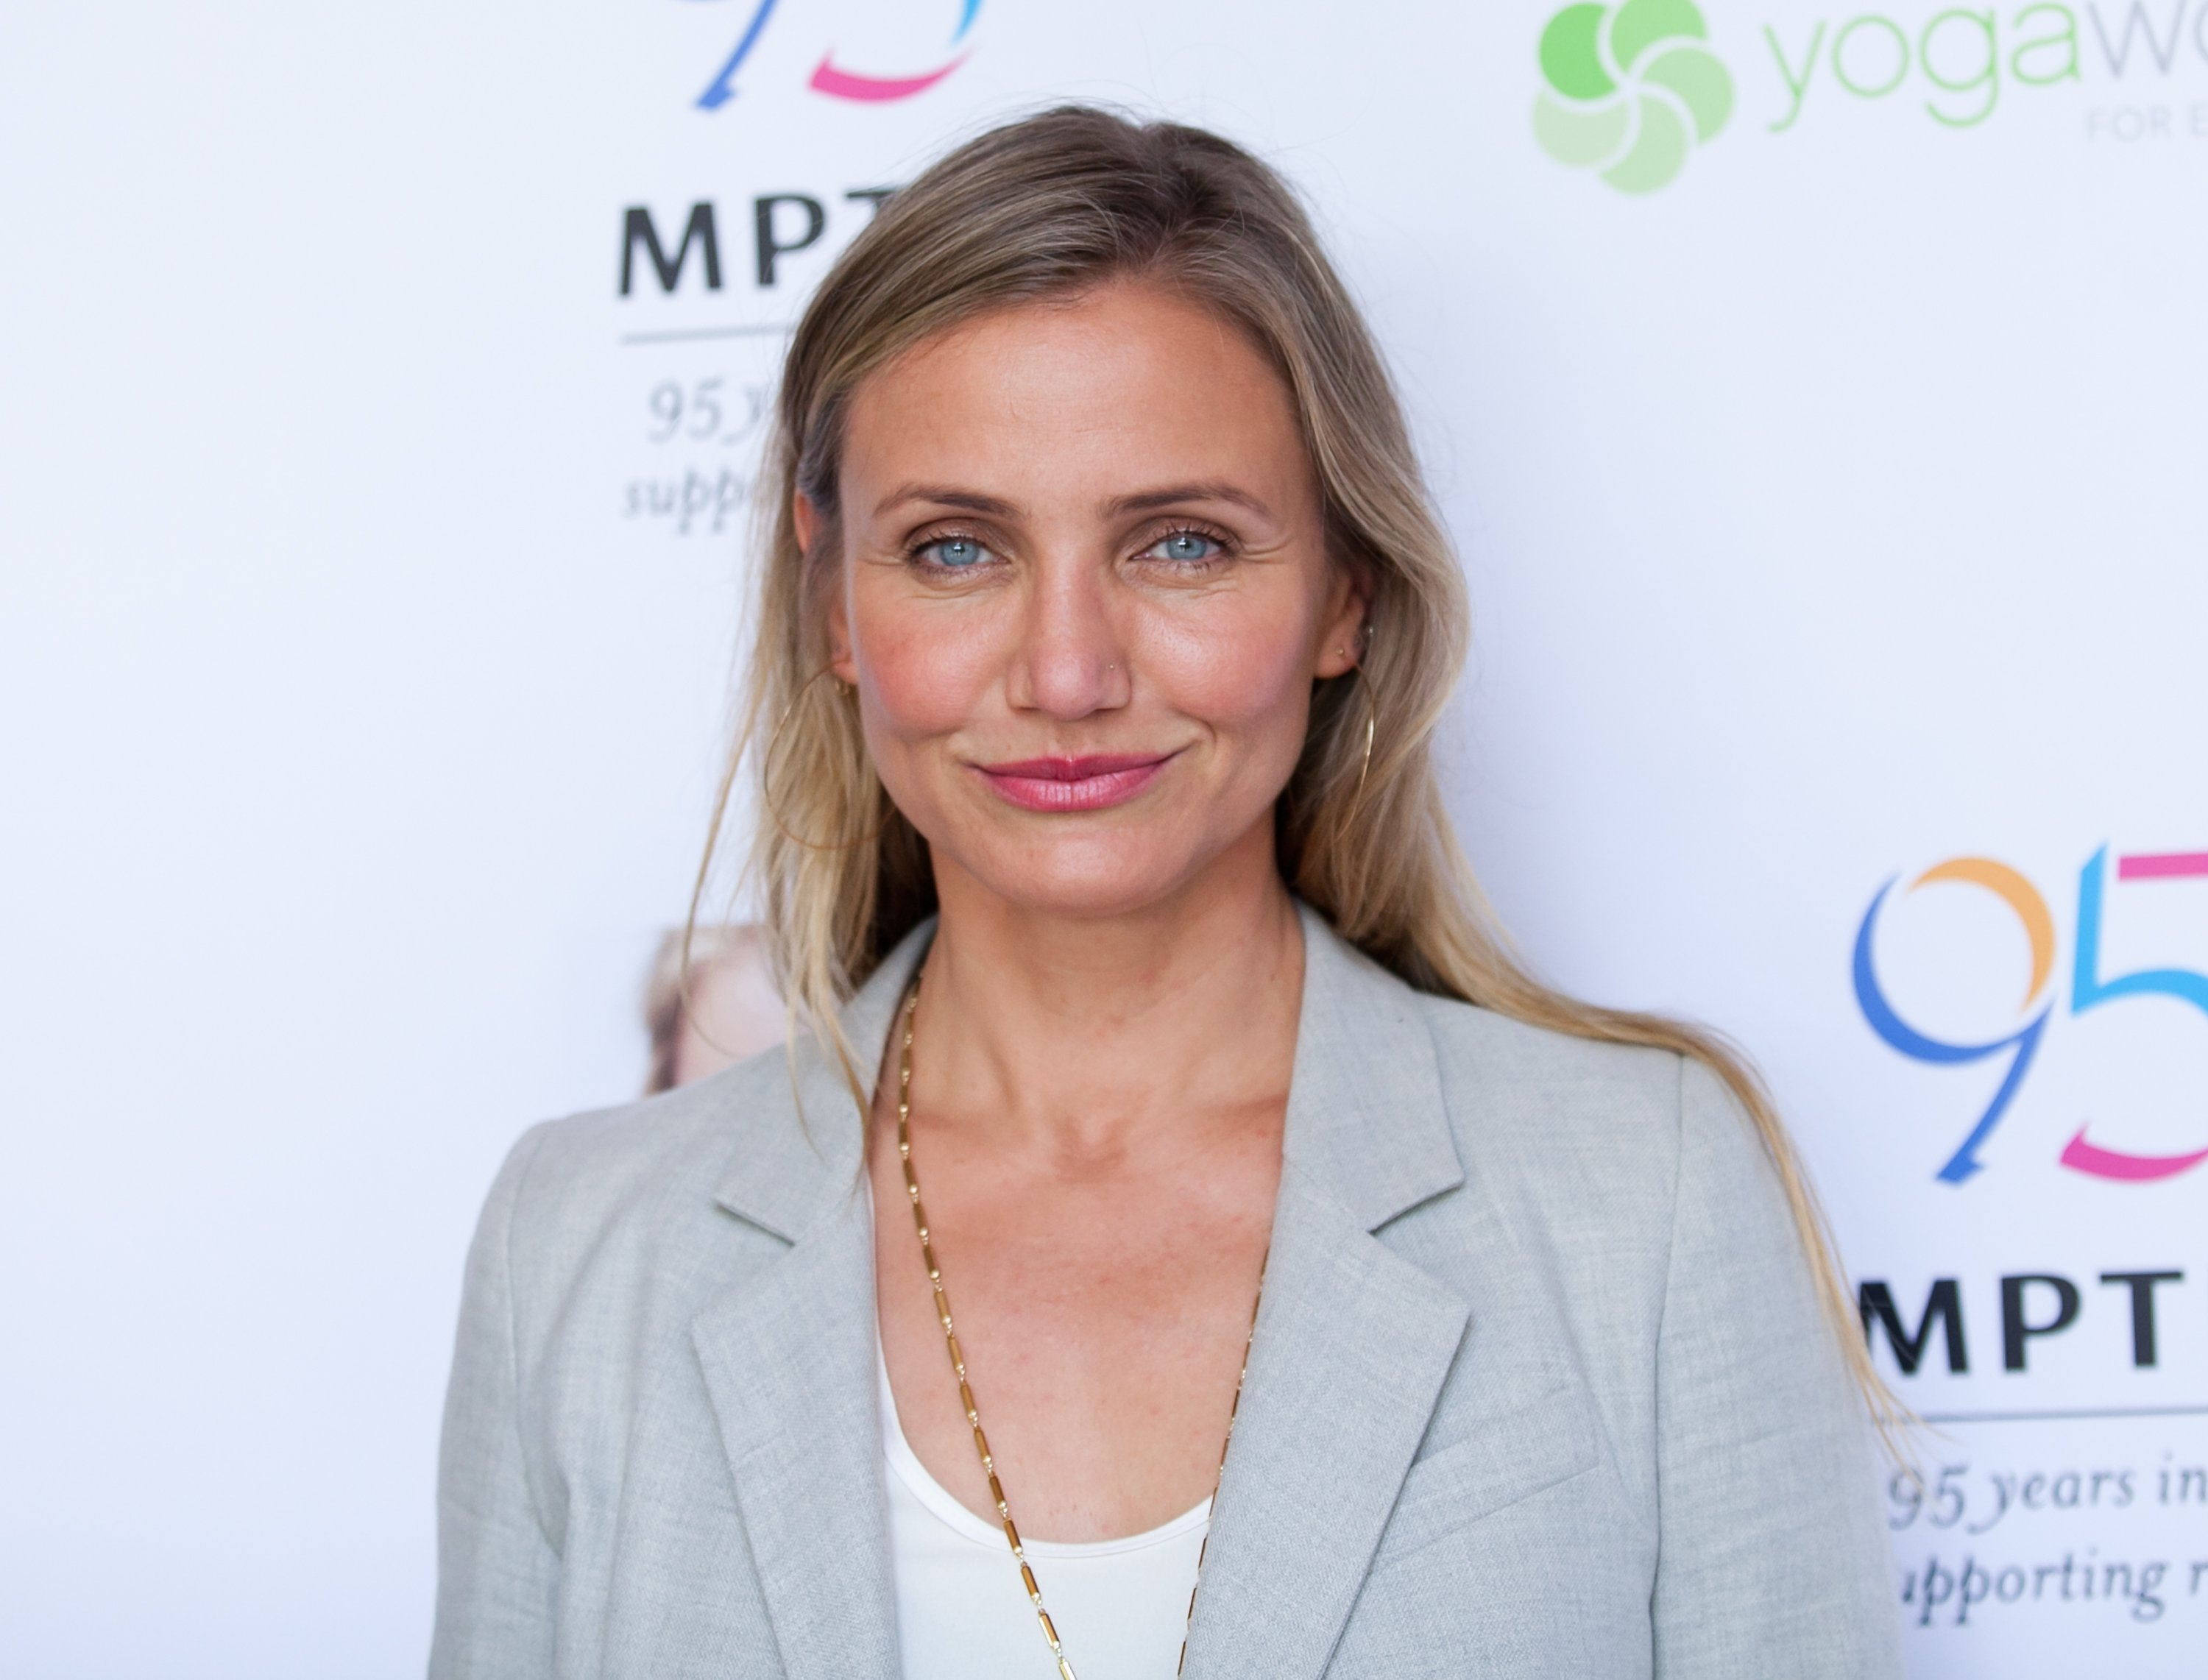 Cameron Diaz attends the MPTF Celebration for health and fitness at The Wasserman Campus on June 10, 2016, in Woodland Hills, California. | Source: Getty Images.